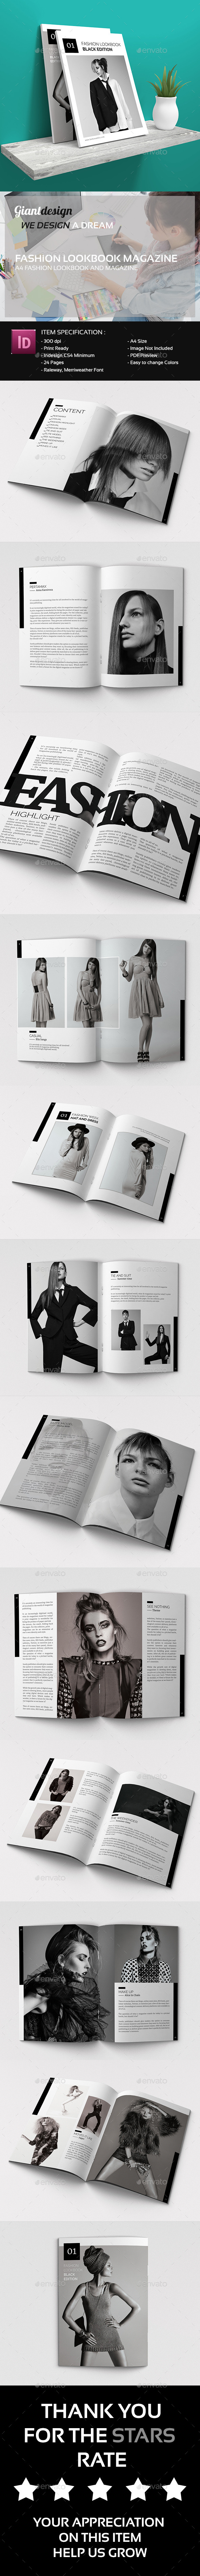 Fashion Lookbook And Magazines